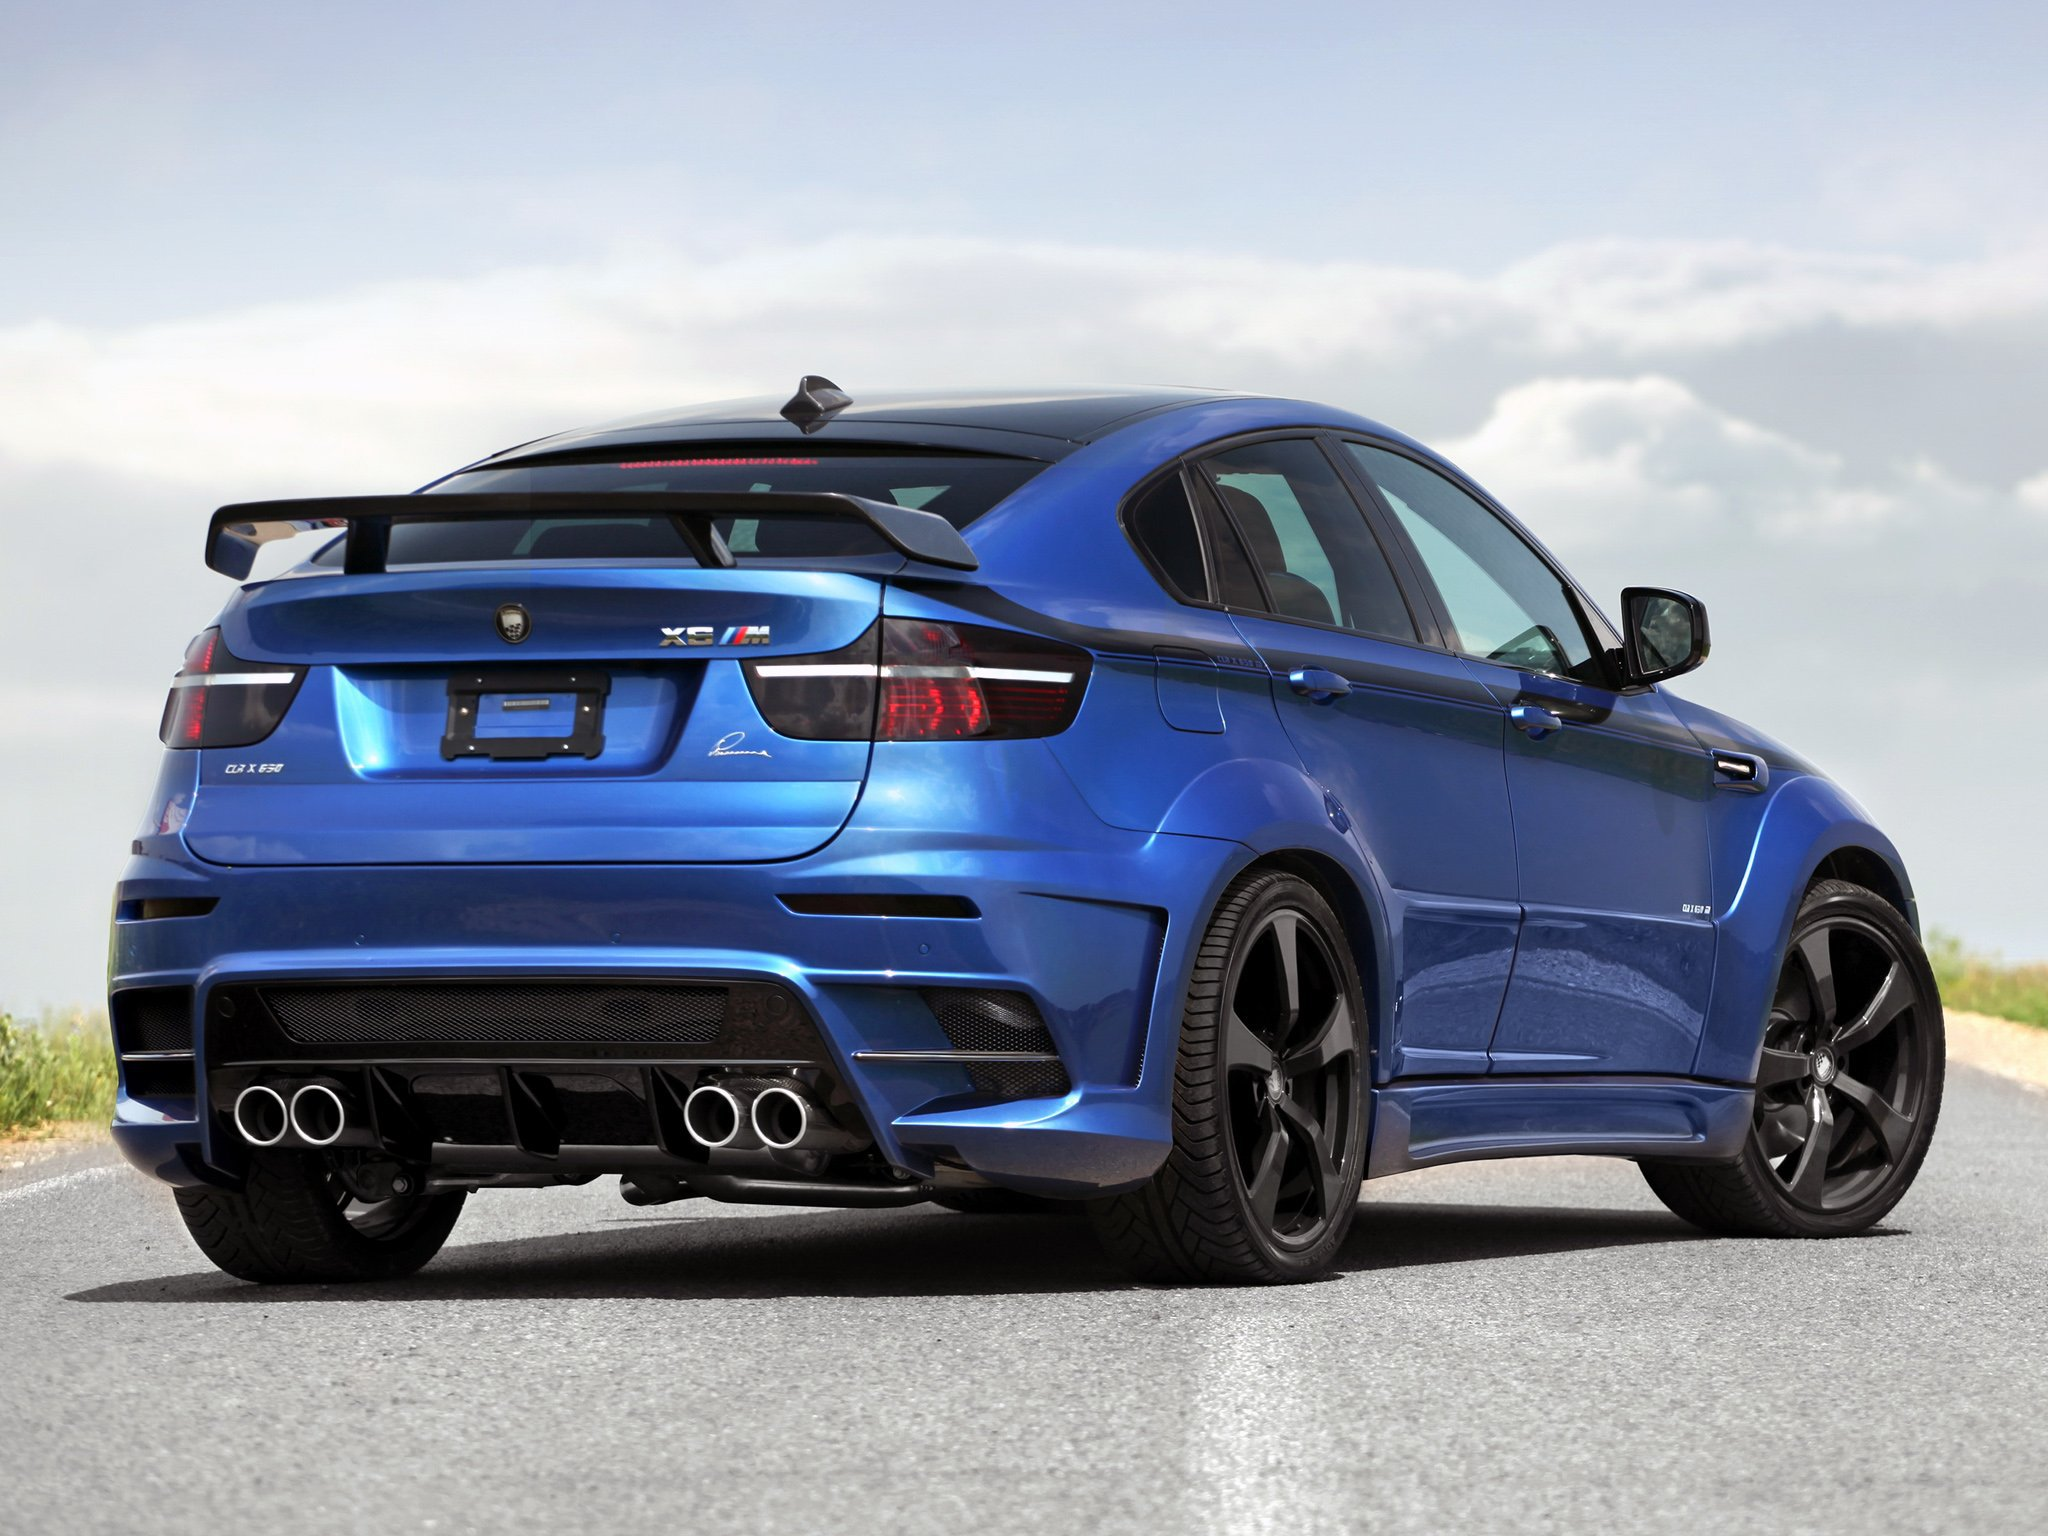 Bmw X6 Tuning Wallpapers Images Photos Pictures Backgrounds